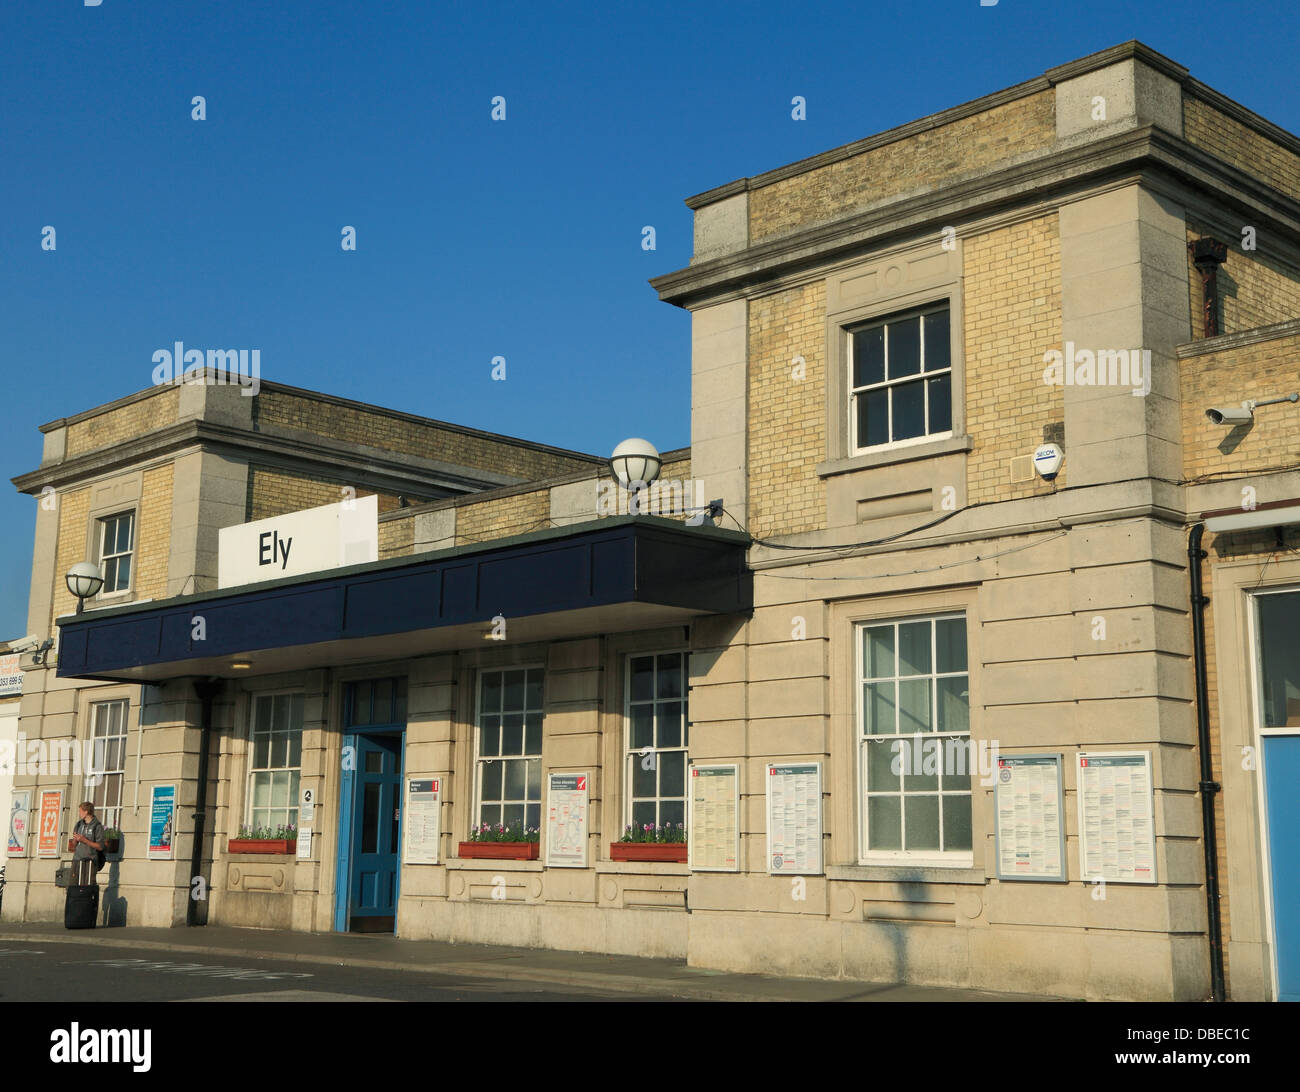 Ely Railway Station entrance, Cambridgeshire England UK - Stock Image